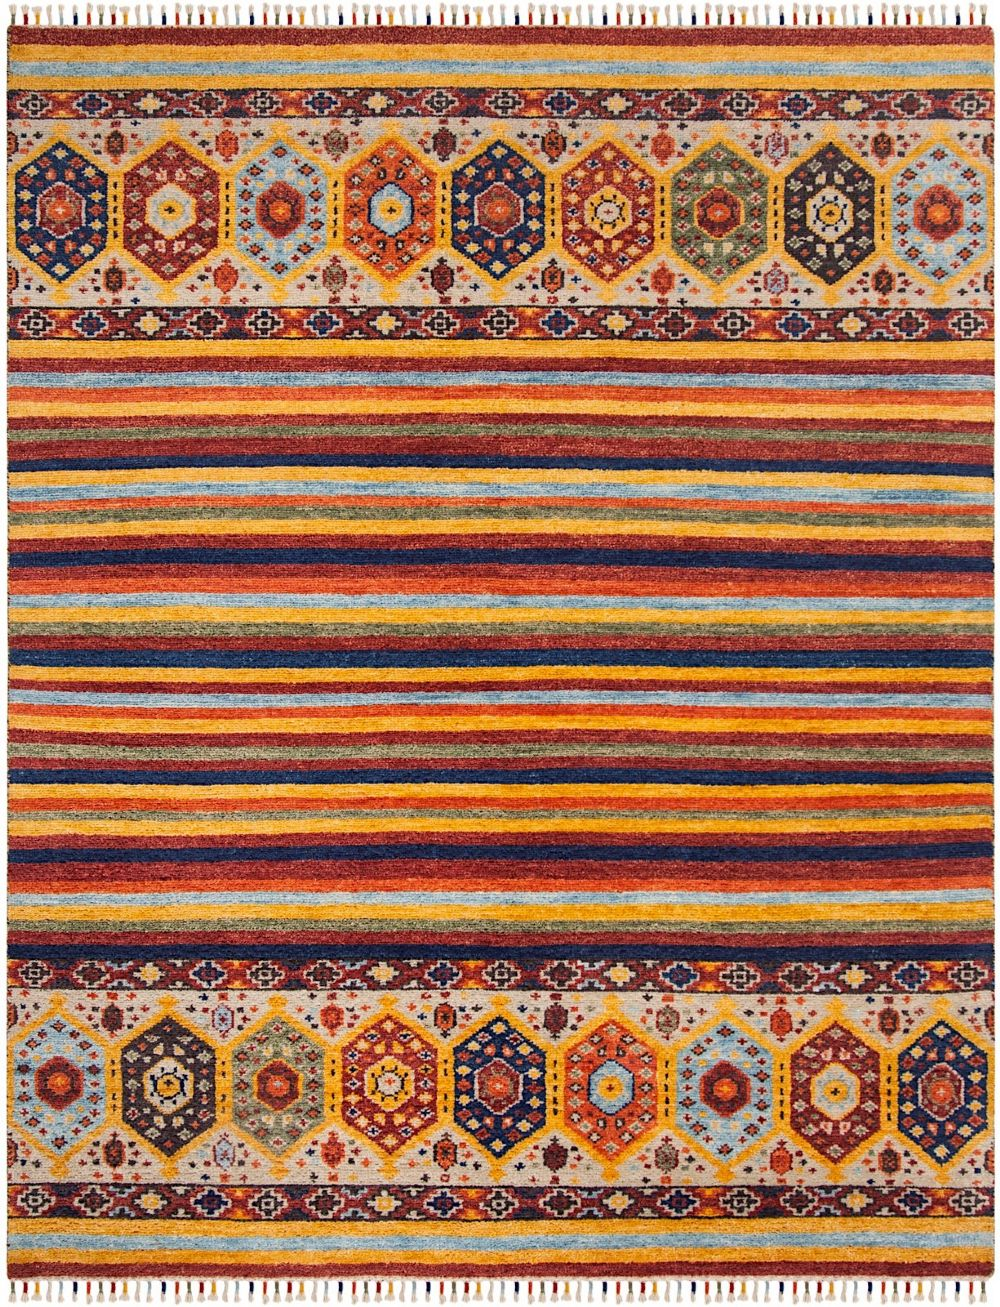 safavieh nomad southwestern/lodge area rug collection